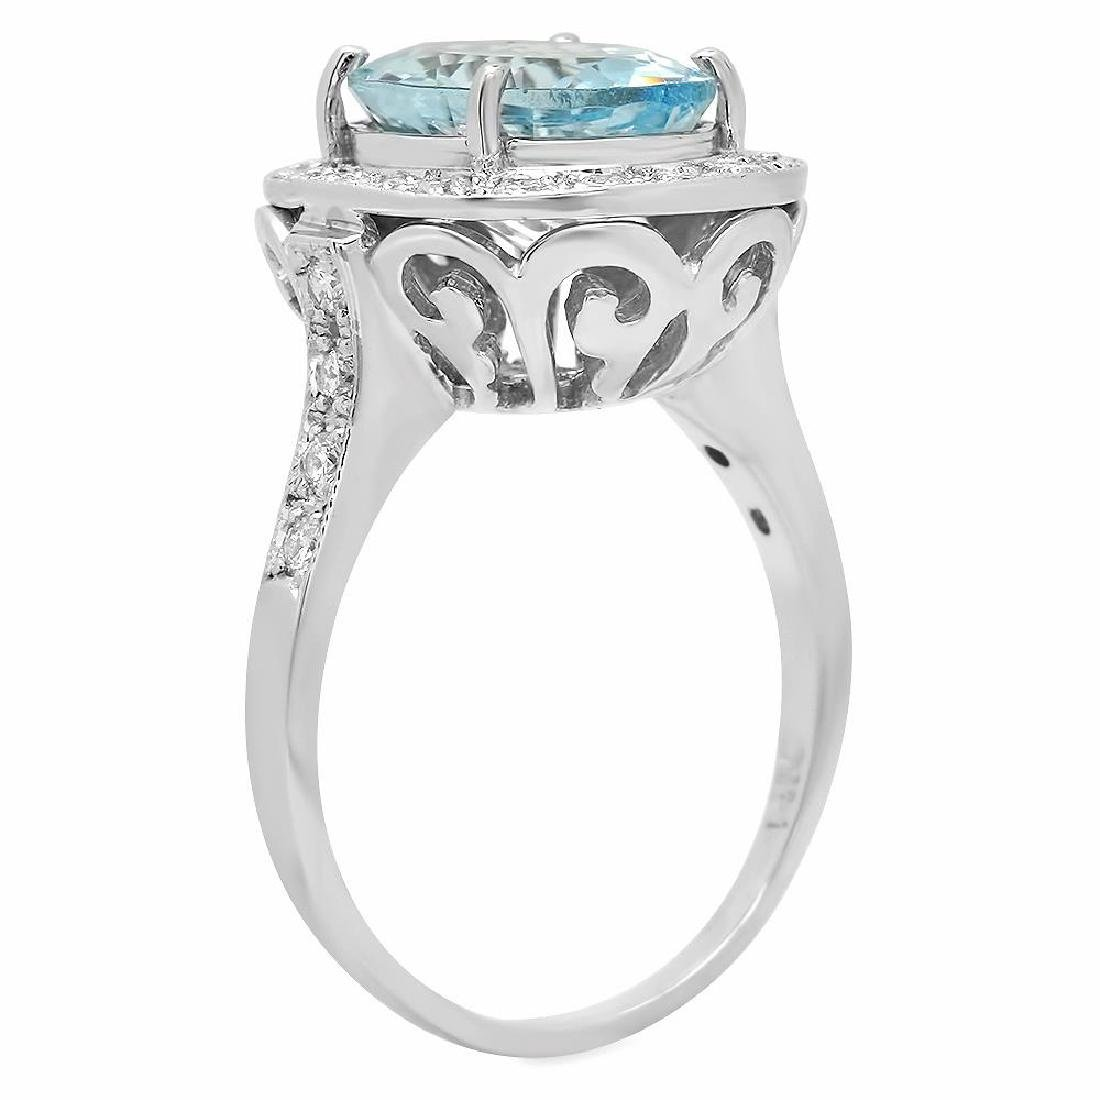 14K Gold 3.99ct Aquamarine 0.55ct Diamond Ring - 2